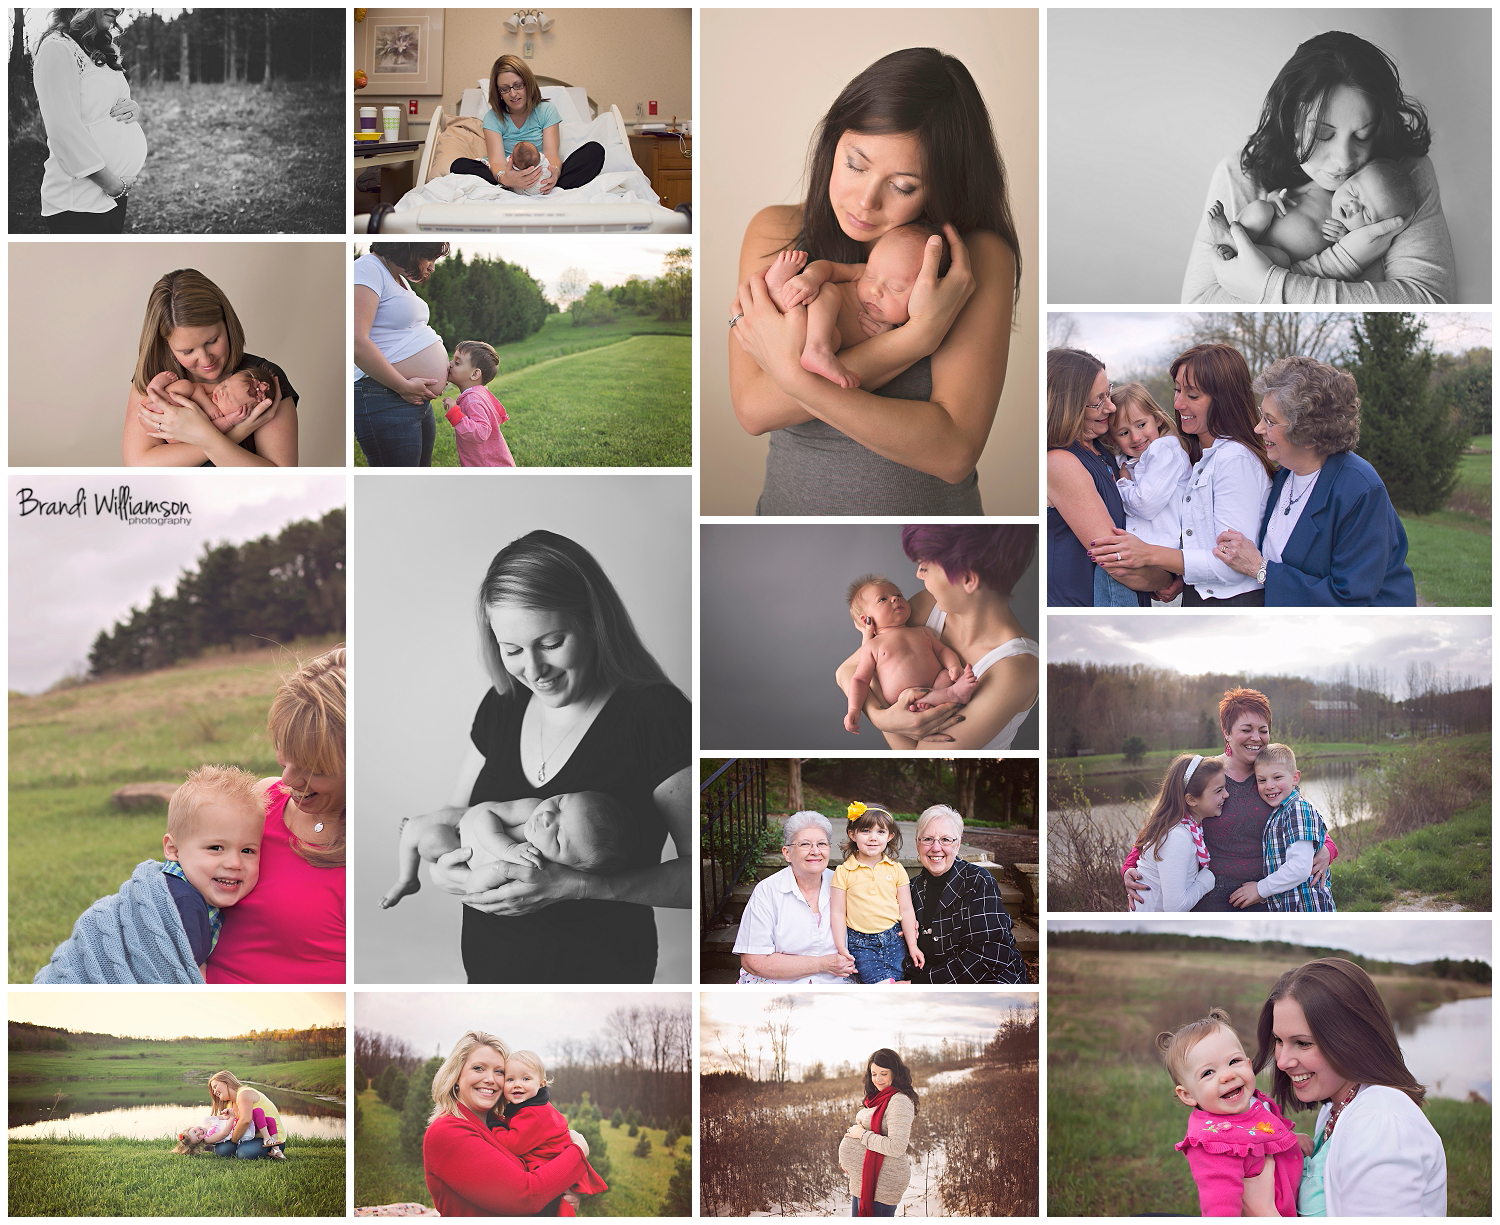 happy-mothers-day | Dover, New Philadelphia Ohio family photographer | Brandi Williamson Photography